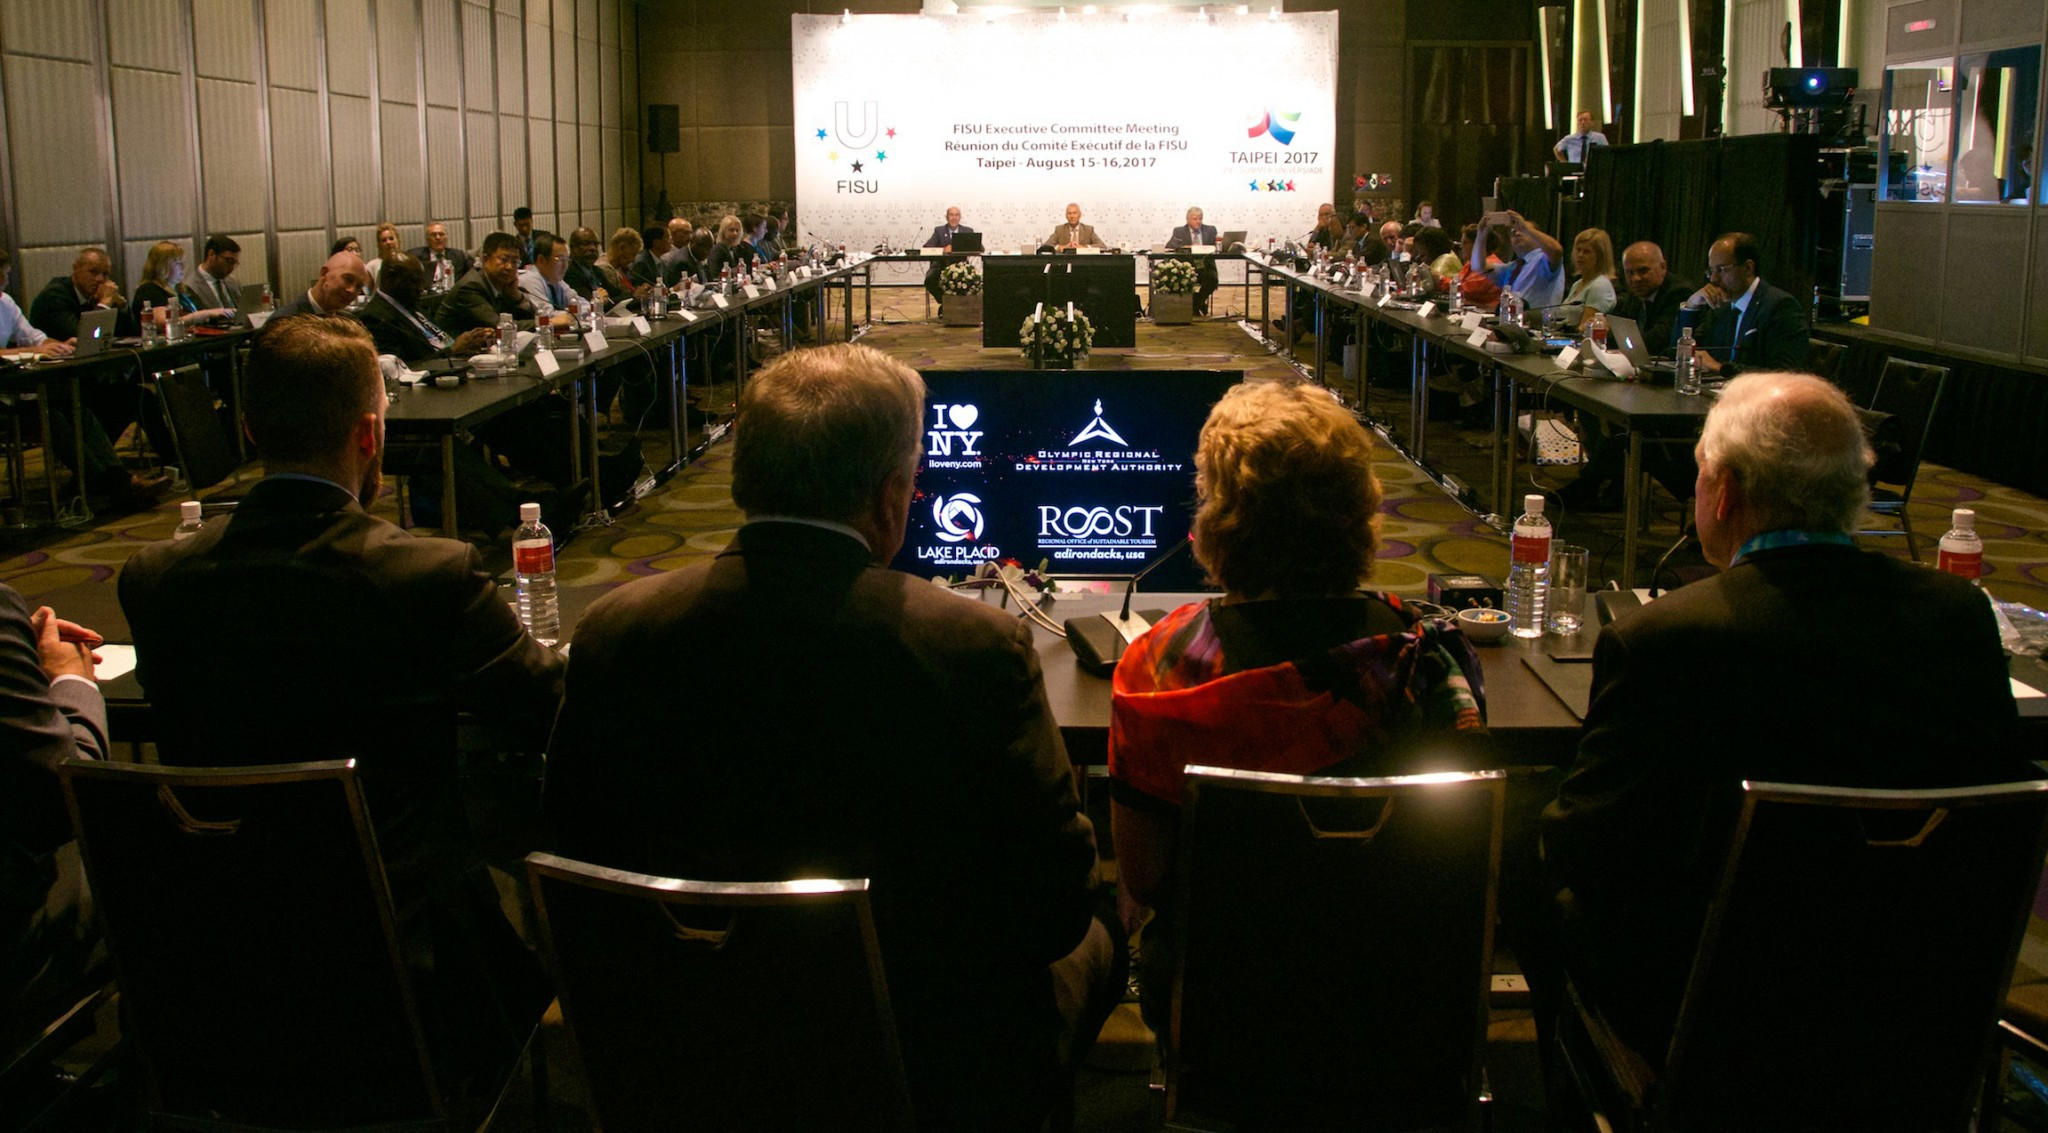 Lake Placid present bid for 2023 Winter Universiade to FISU Executive Committee